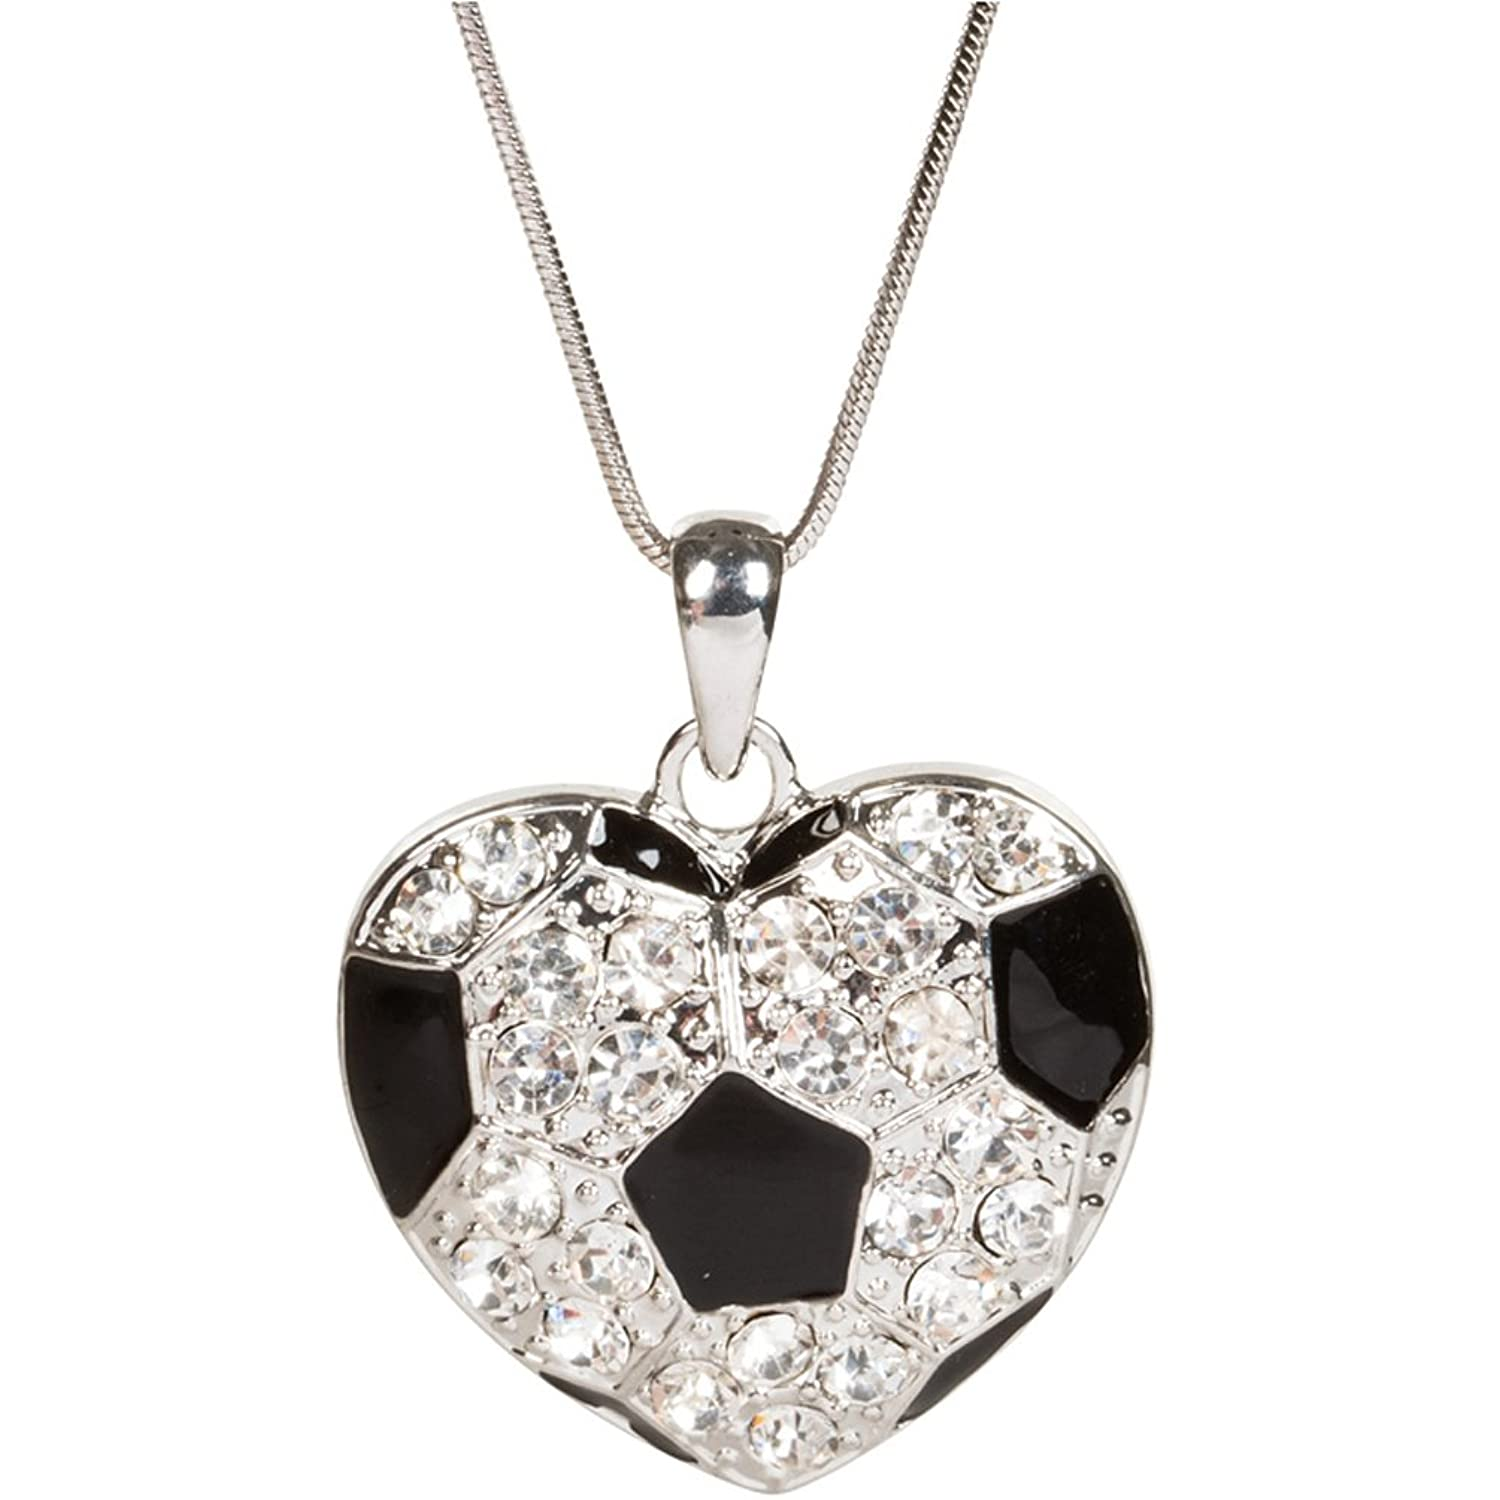 Amazon heirloom finds heart shaped crystal soccer ball amazon heirloom finds heart shaped crystal soccer ball pendant necklace jewelry mozeypictures Image collections